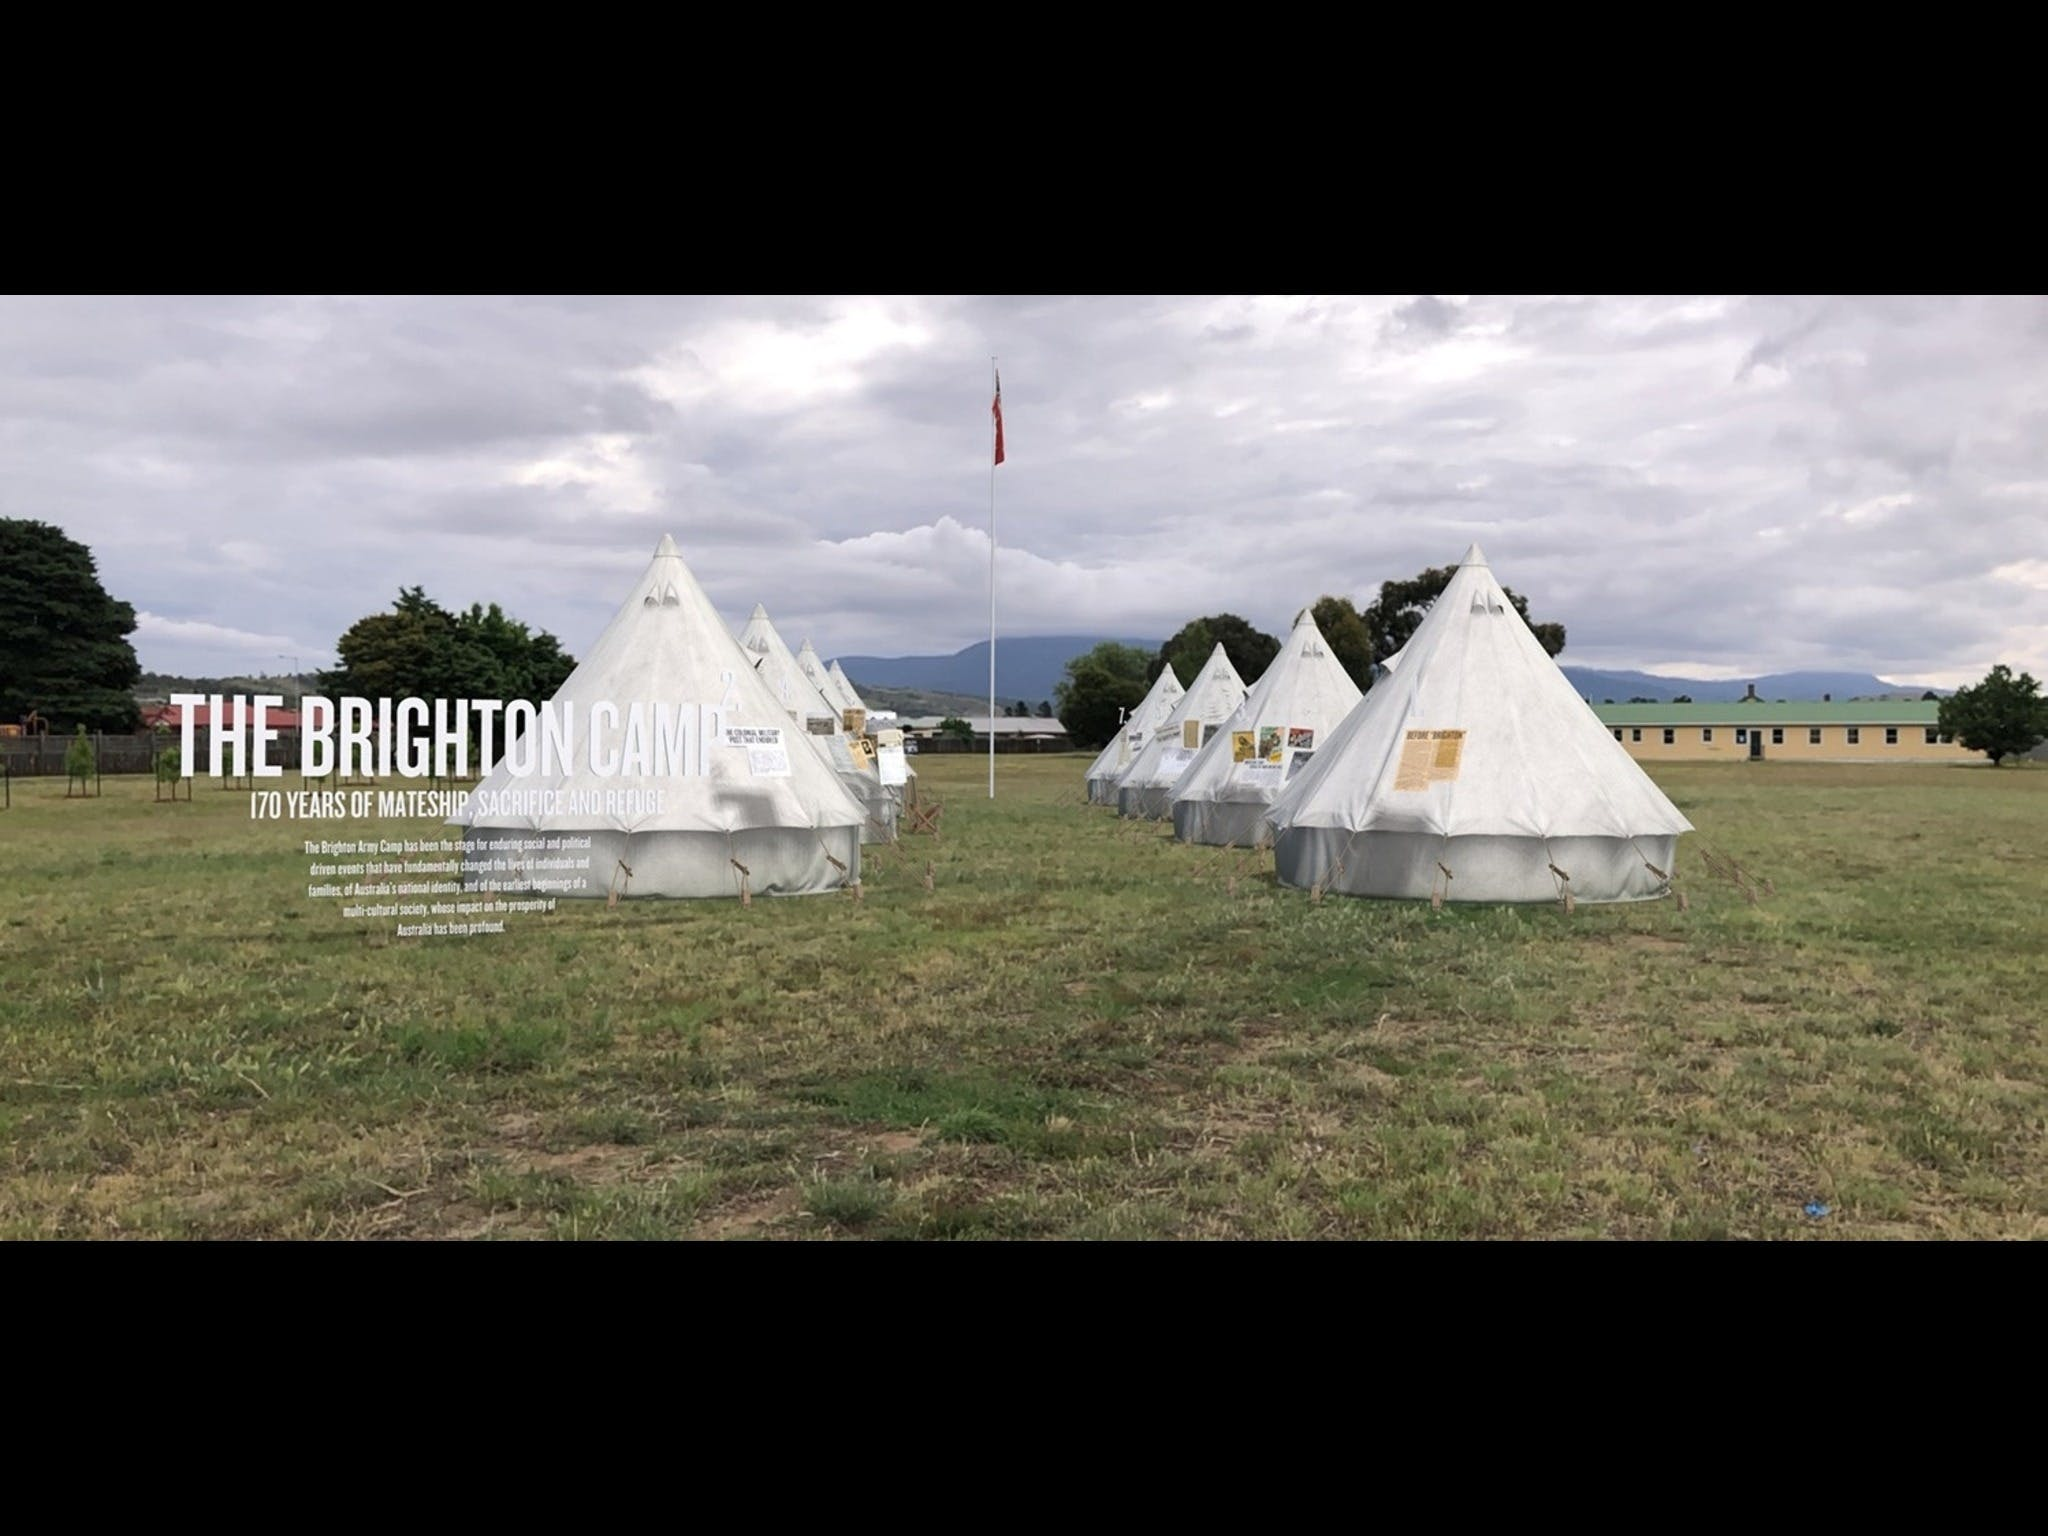 Brighton Army Camp - eAccommodation